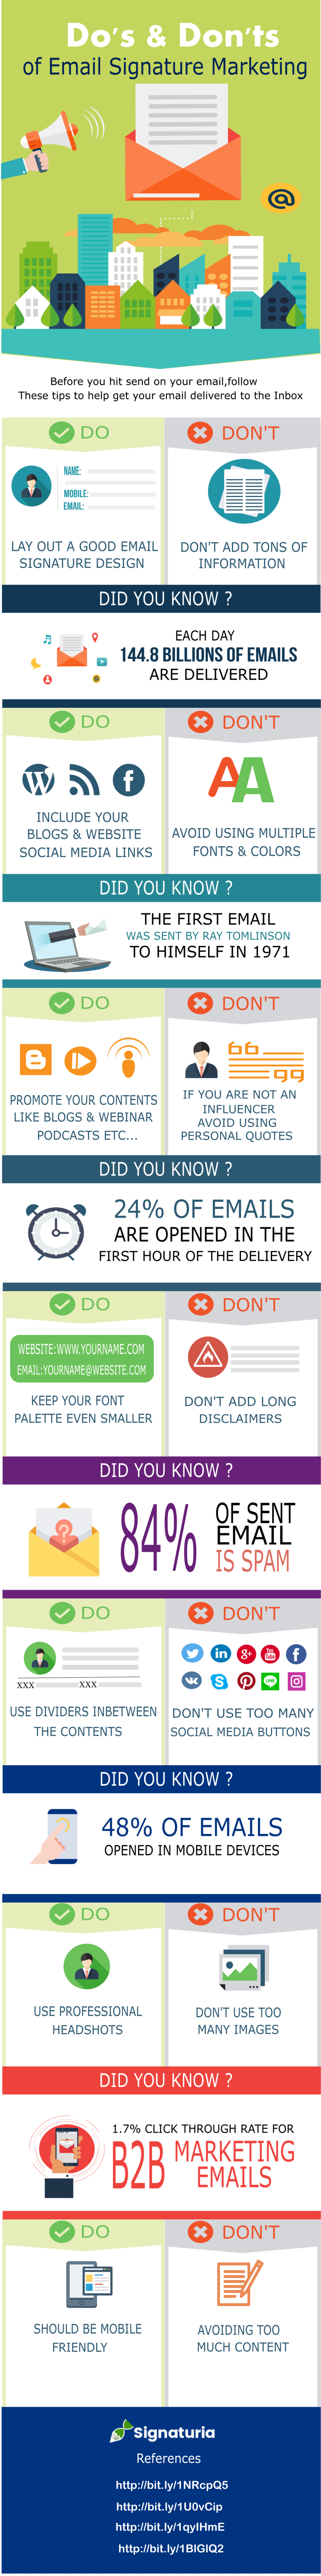 Do-donts-of-email-marketing-infographic